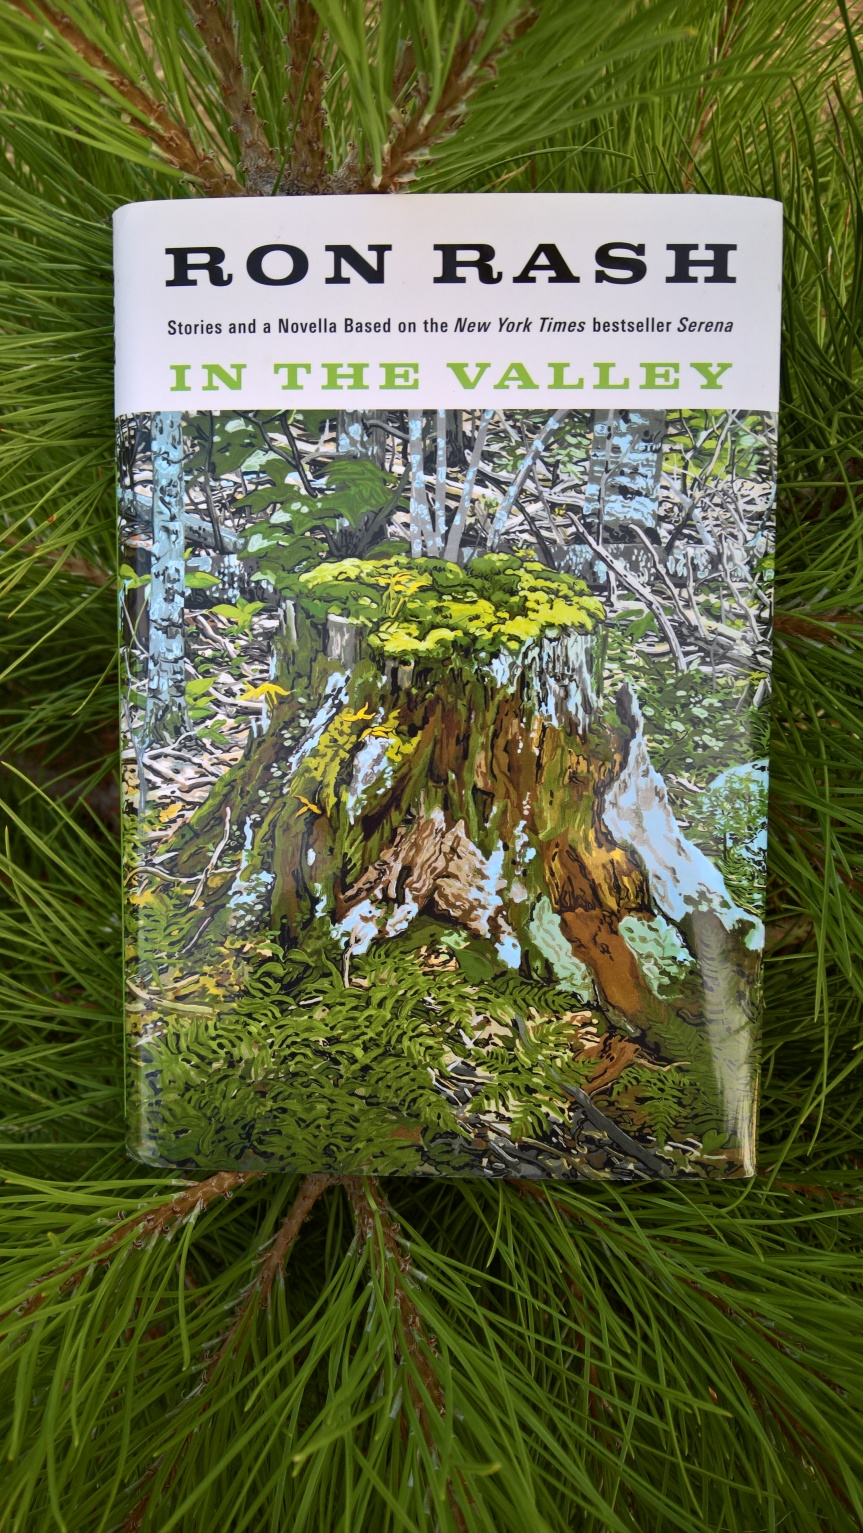 Ron Rash Releases In theValley!